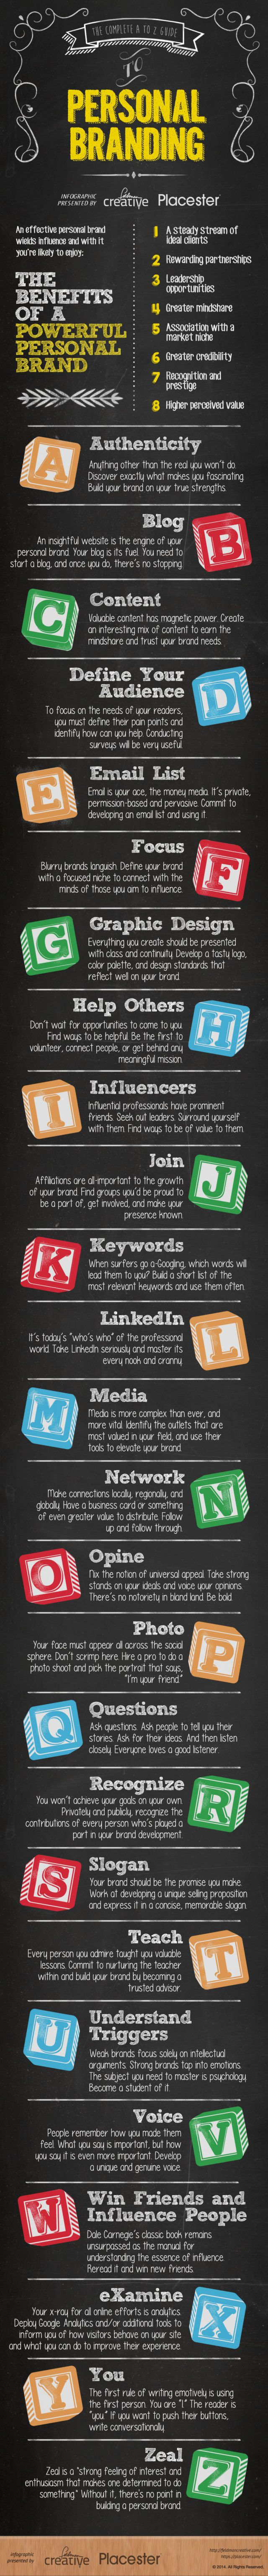 guide-to-personal-branding